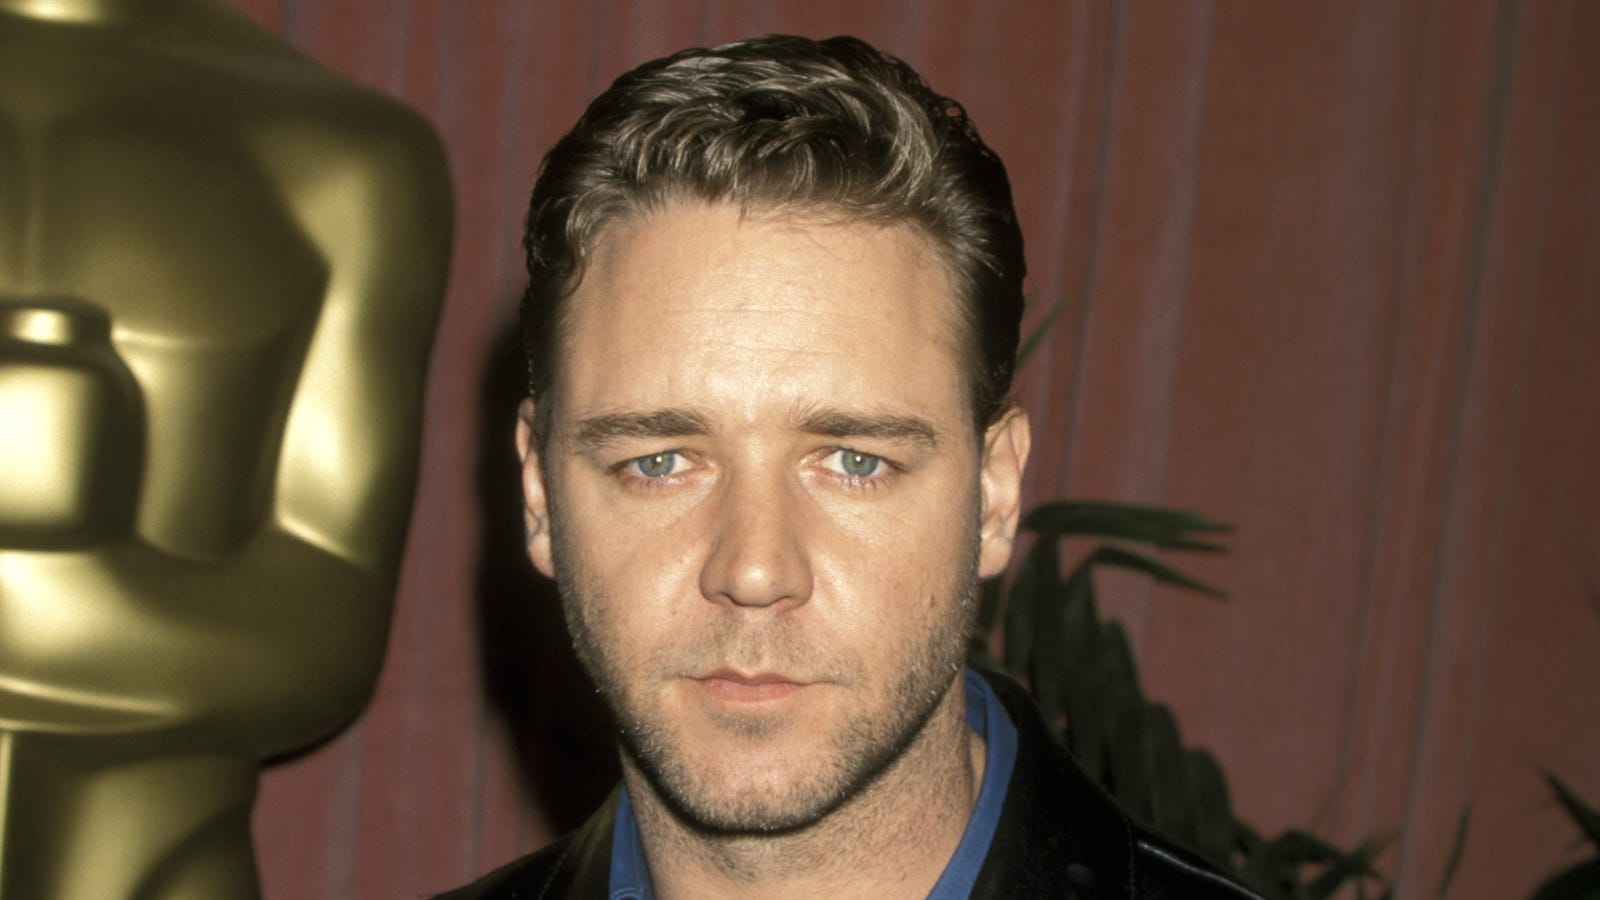 Russell Crowe auctions off movie memorabilia for divorce